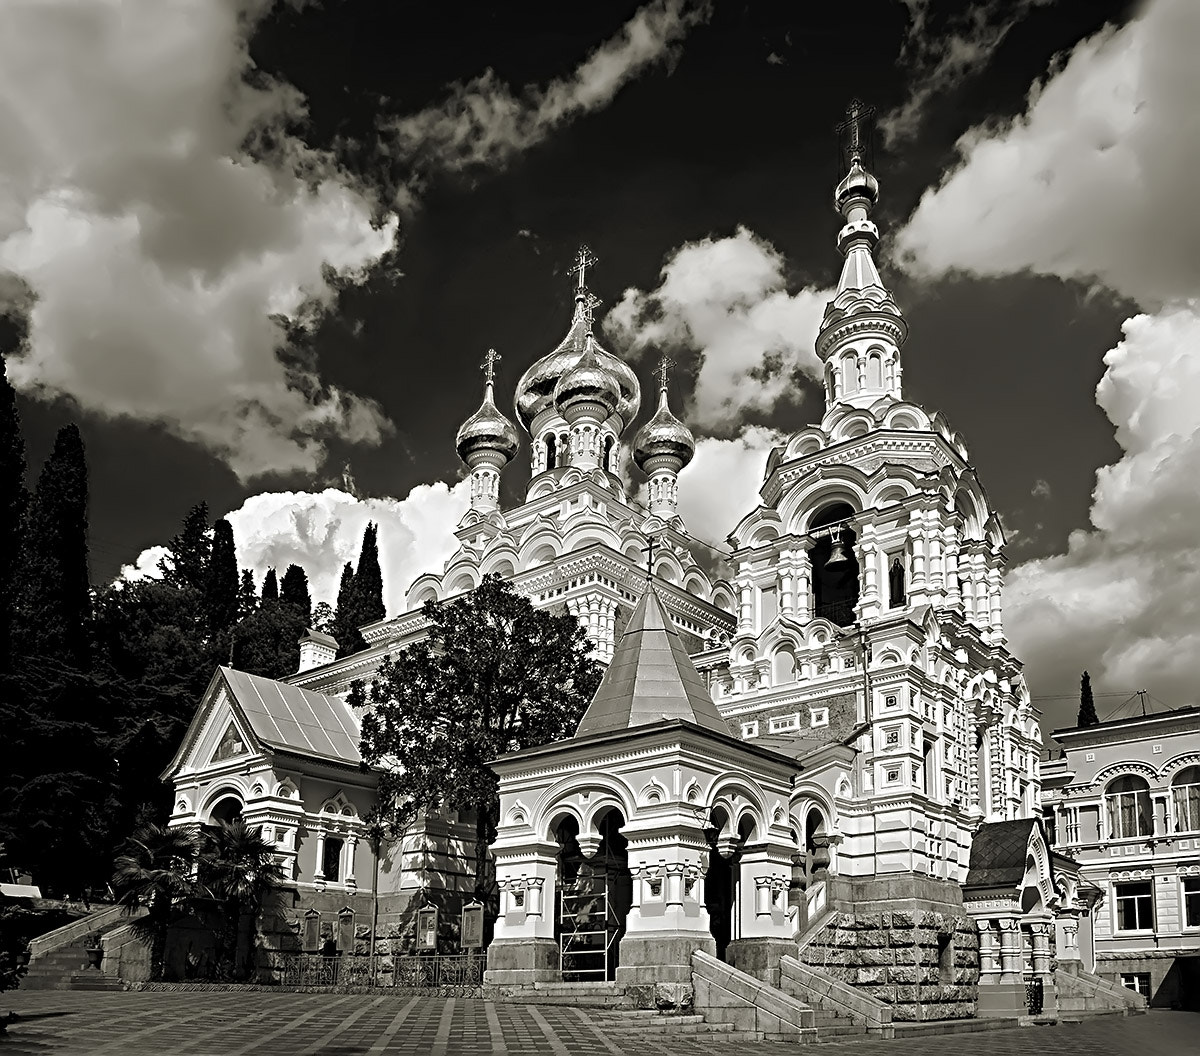 Photograph Aleksandr Nevskij Cathedral -Yalta by Mariusz Sz on 500px